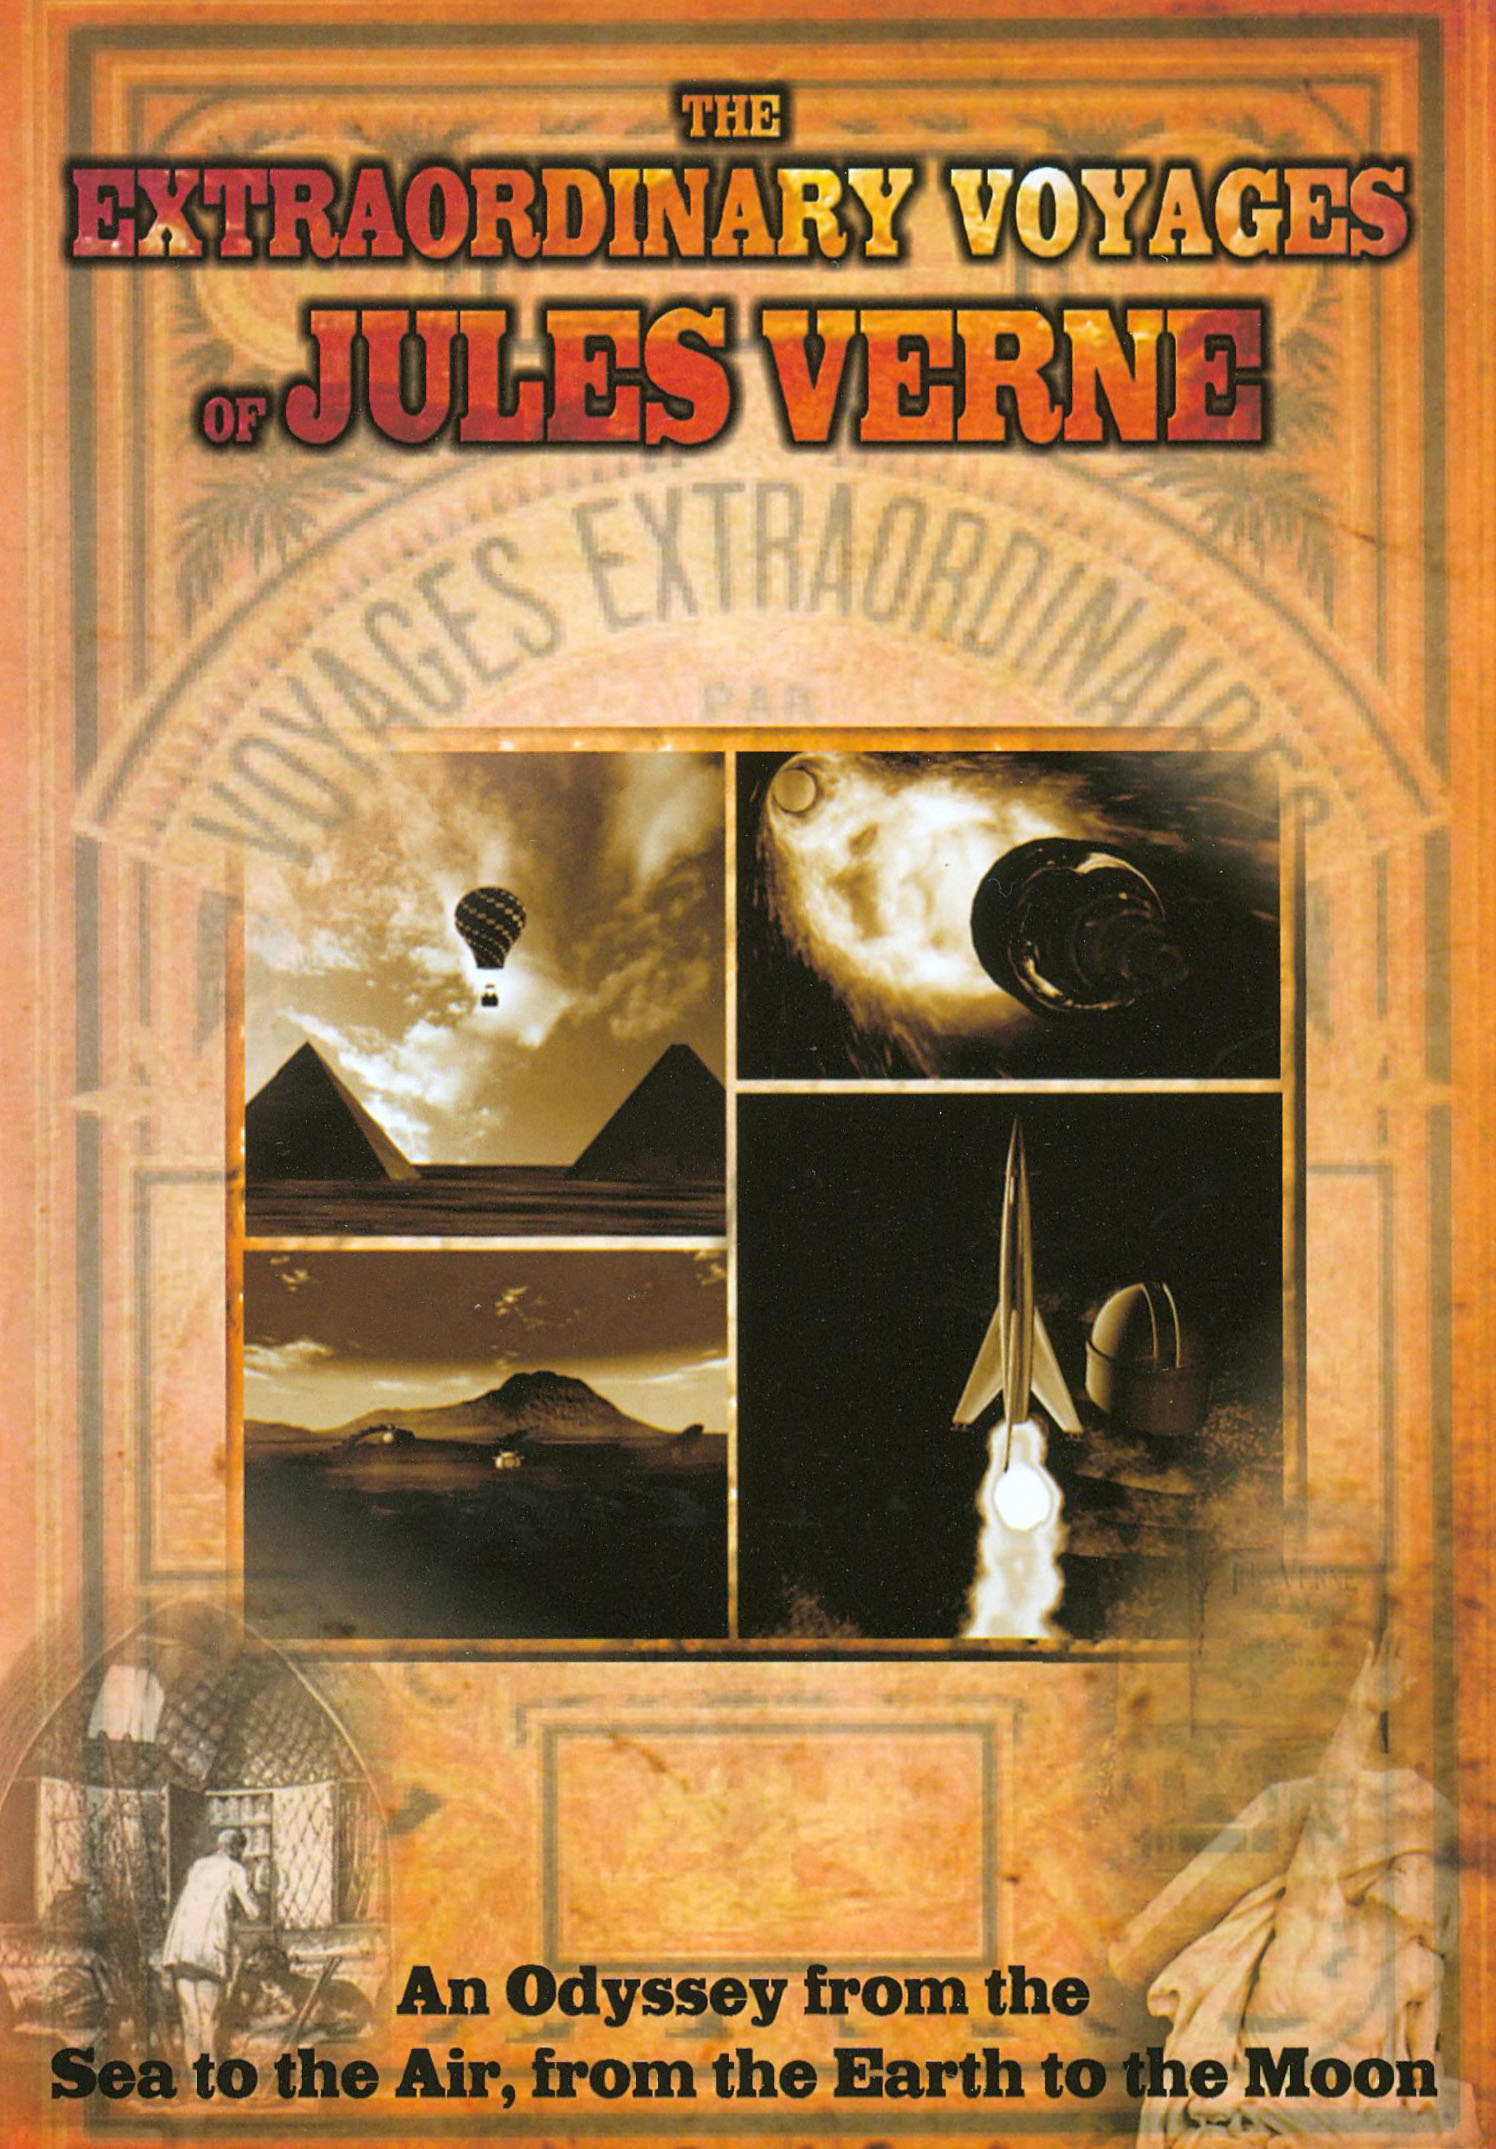 a study of the life and works of jules verne Jules verne (february 8, 1828– march 24, 1905) life he was born in the his father was a lawyer, and at the beginning, verne wanted to study law as well.